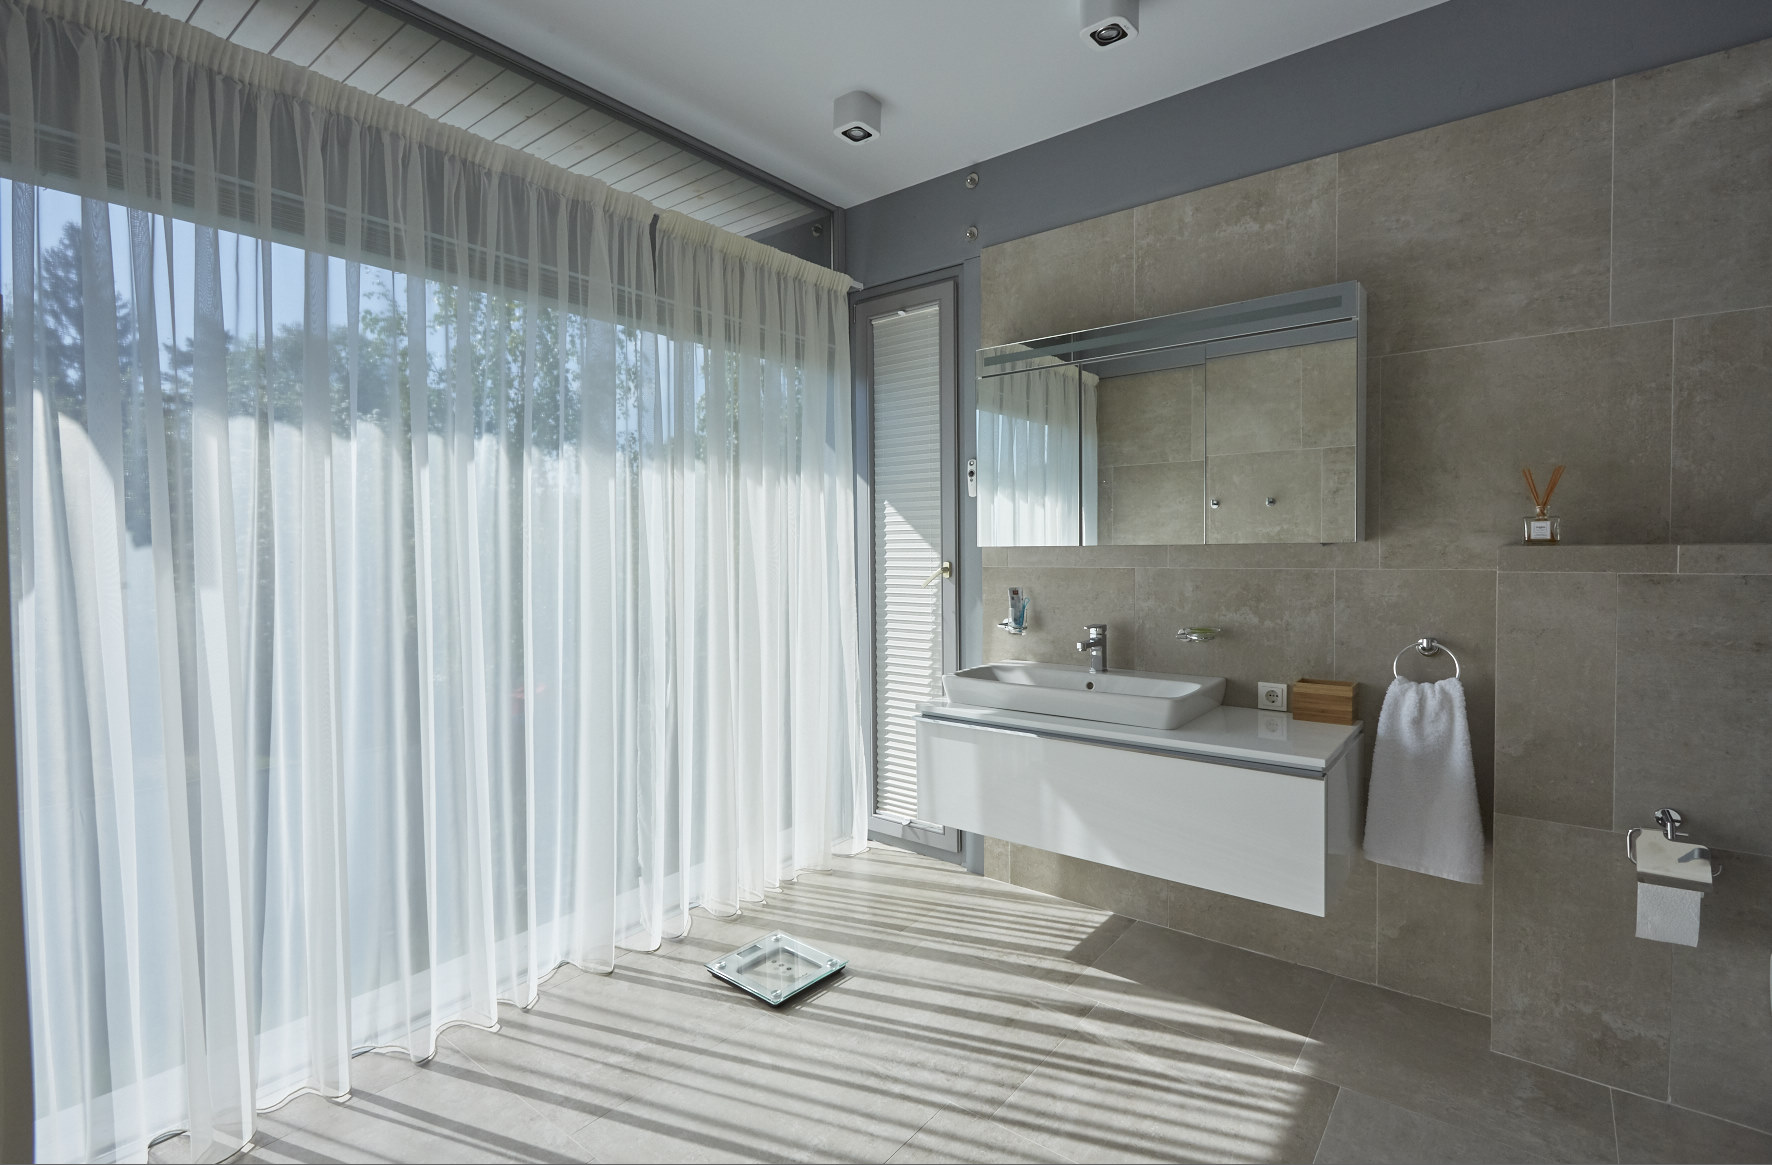 Bathroom with a full height window